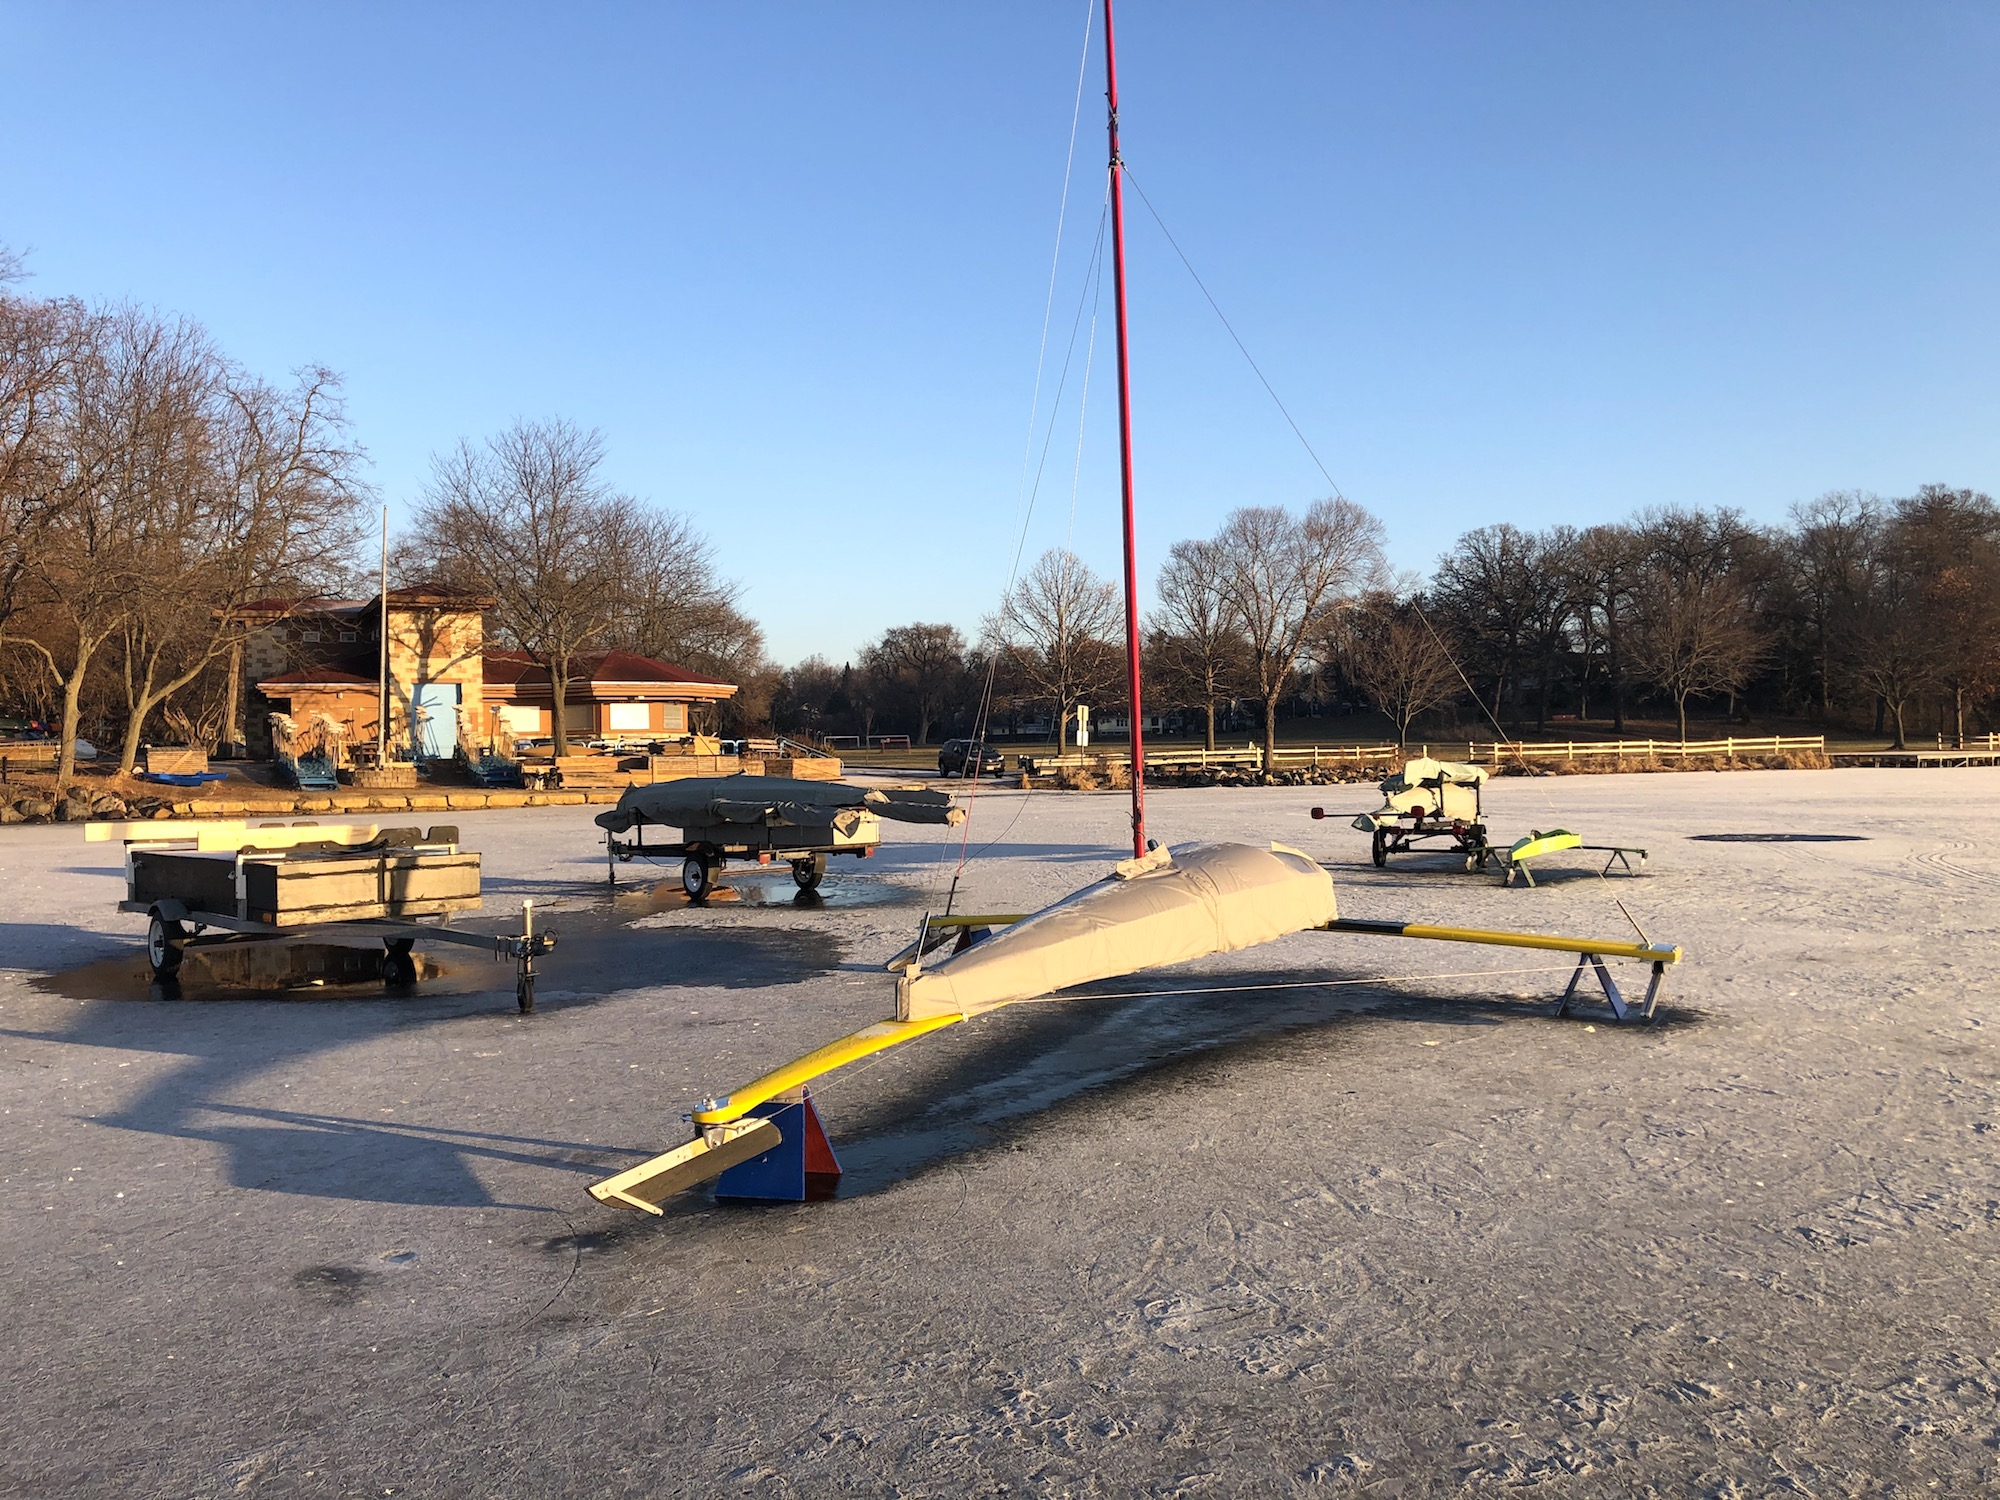 Ice boat on Lake Wingra on December 22, 2019.